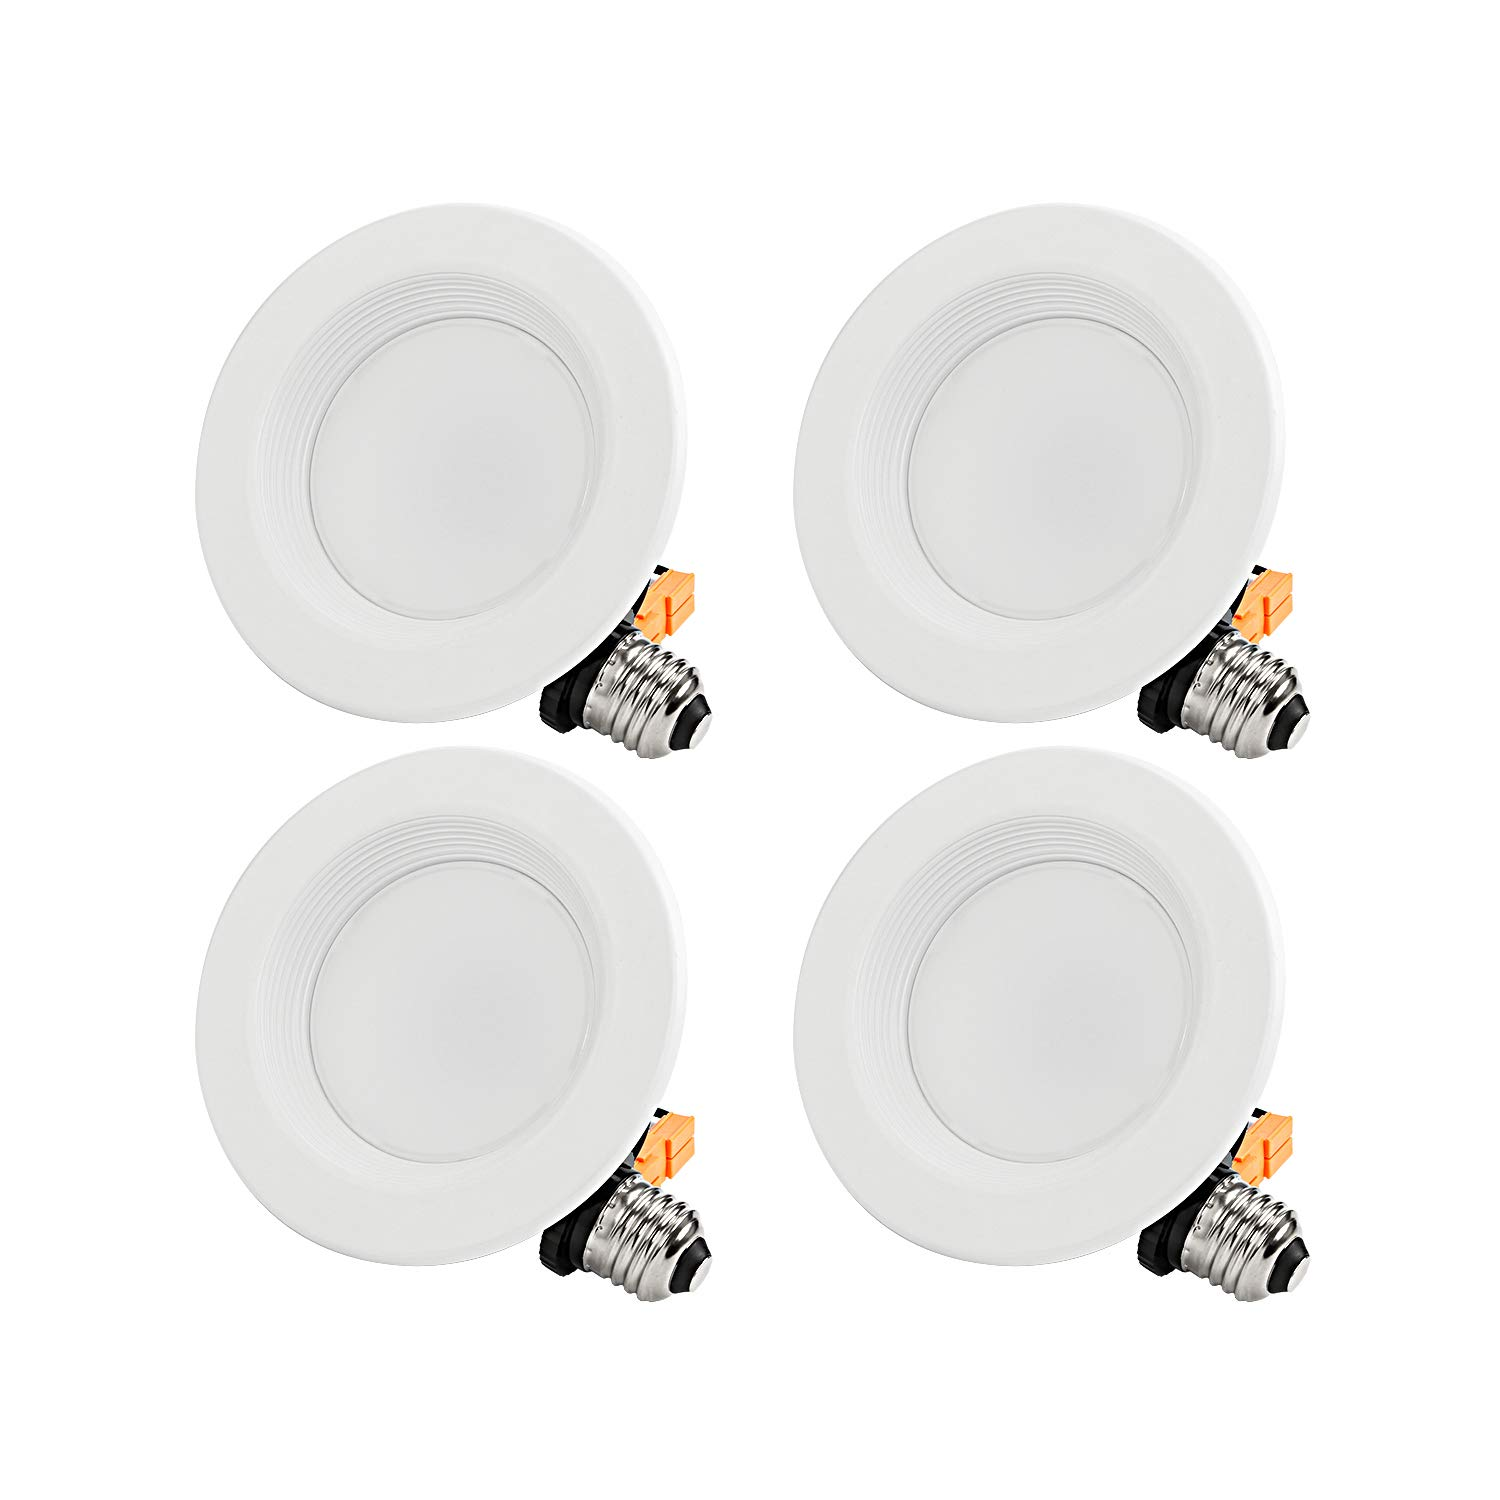 TORCHSTAR 4-Inch Dimmable Recessed LED Downlight with Baffle Trim, 10W (65W Eqv.), CRI 90, ETL, 2700K Soft White, 700lm, Retrofit Lighting Fixture, 5 Years Warranty,Pack of 4